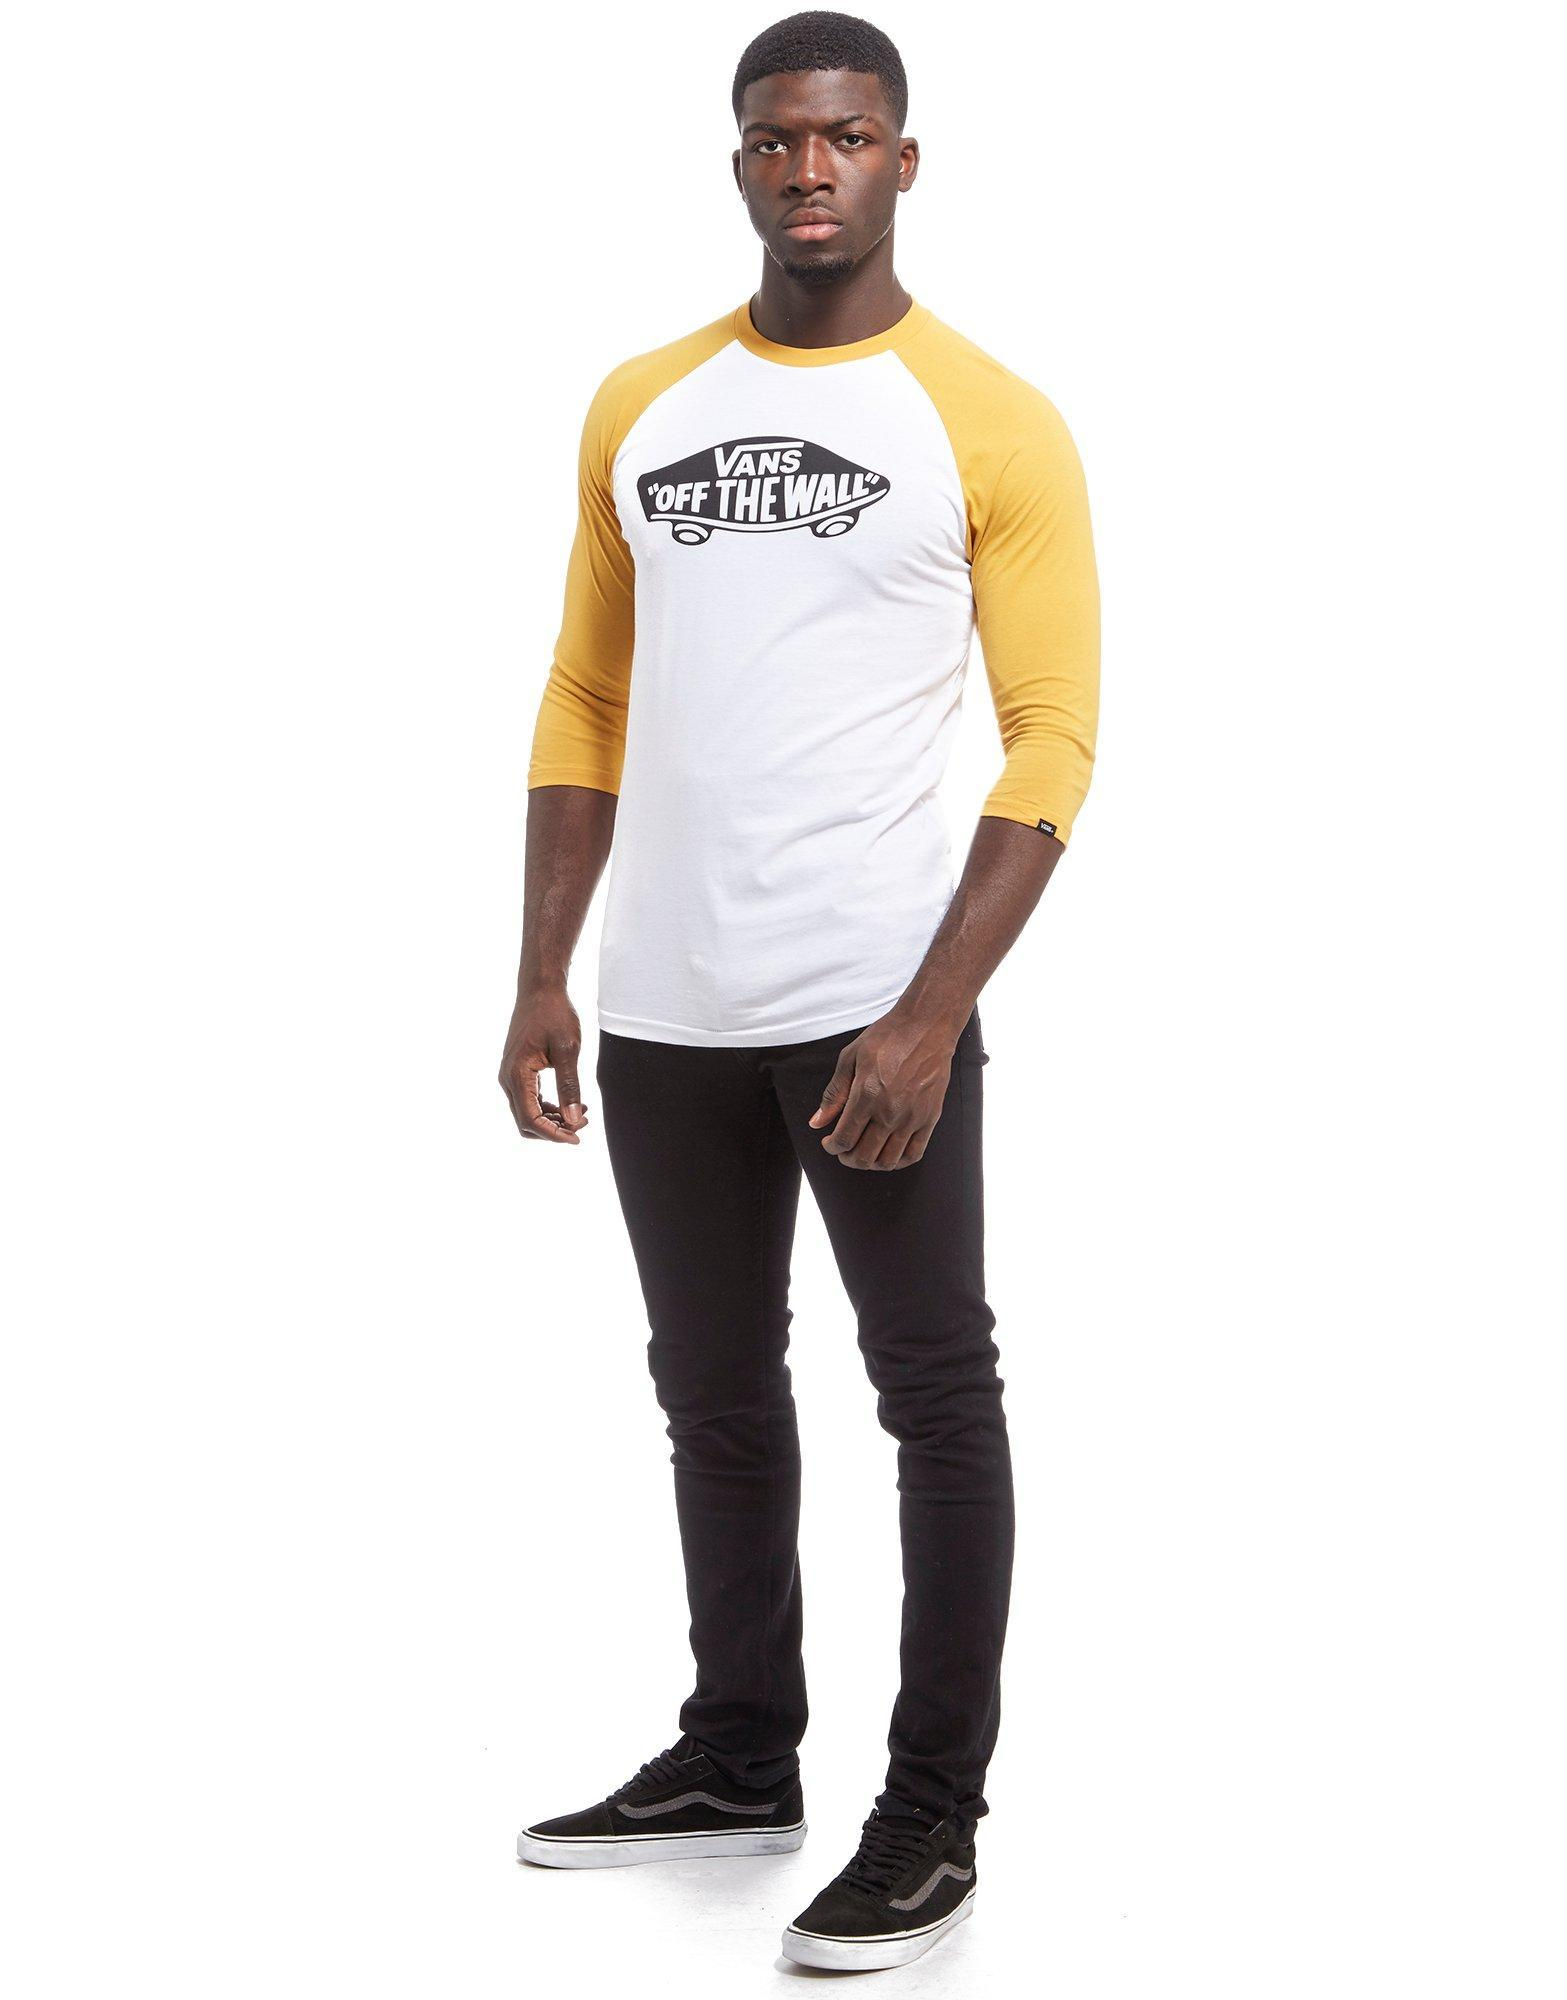 Vans Off The Wall Raglan Sleeve T Shirt In White For Men